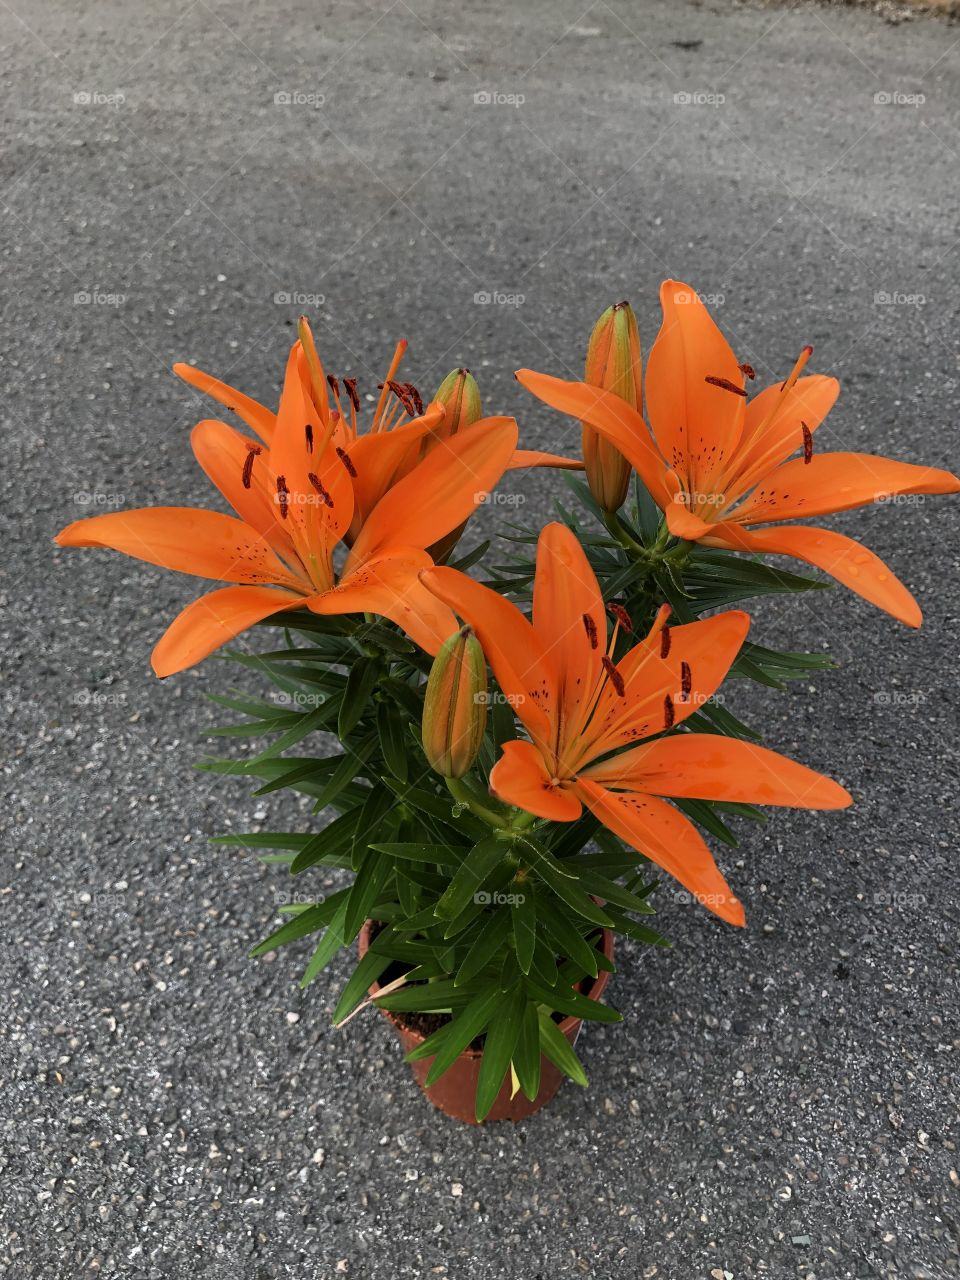 Orange colored Lillie's in impeccable health. Photo taken from directly above the Lillie's.